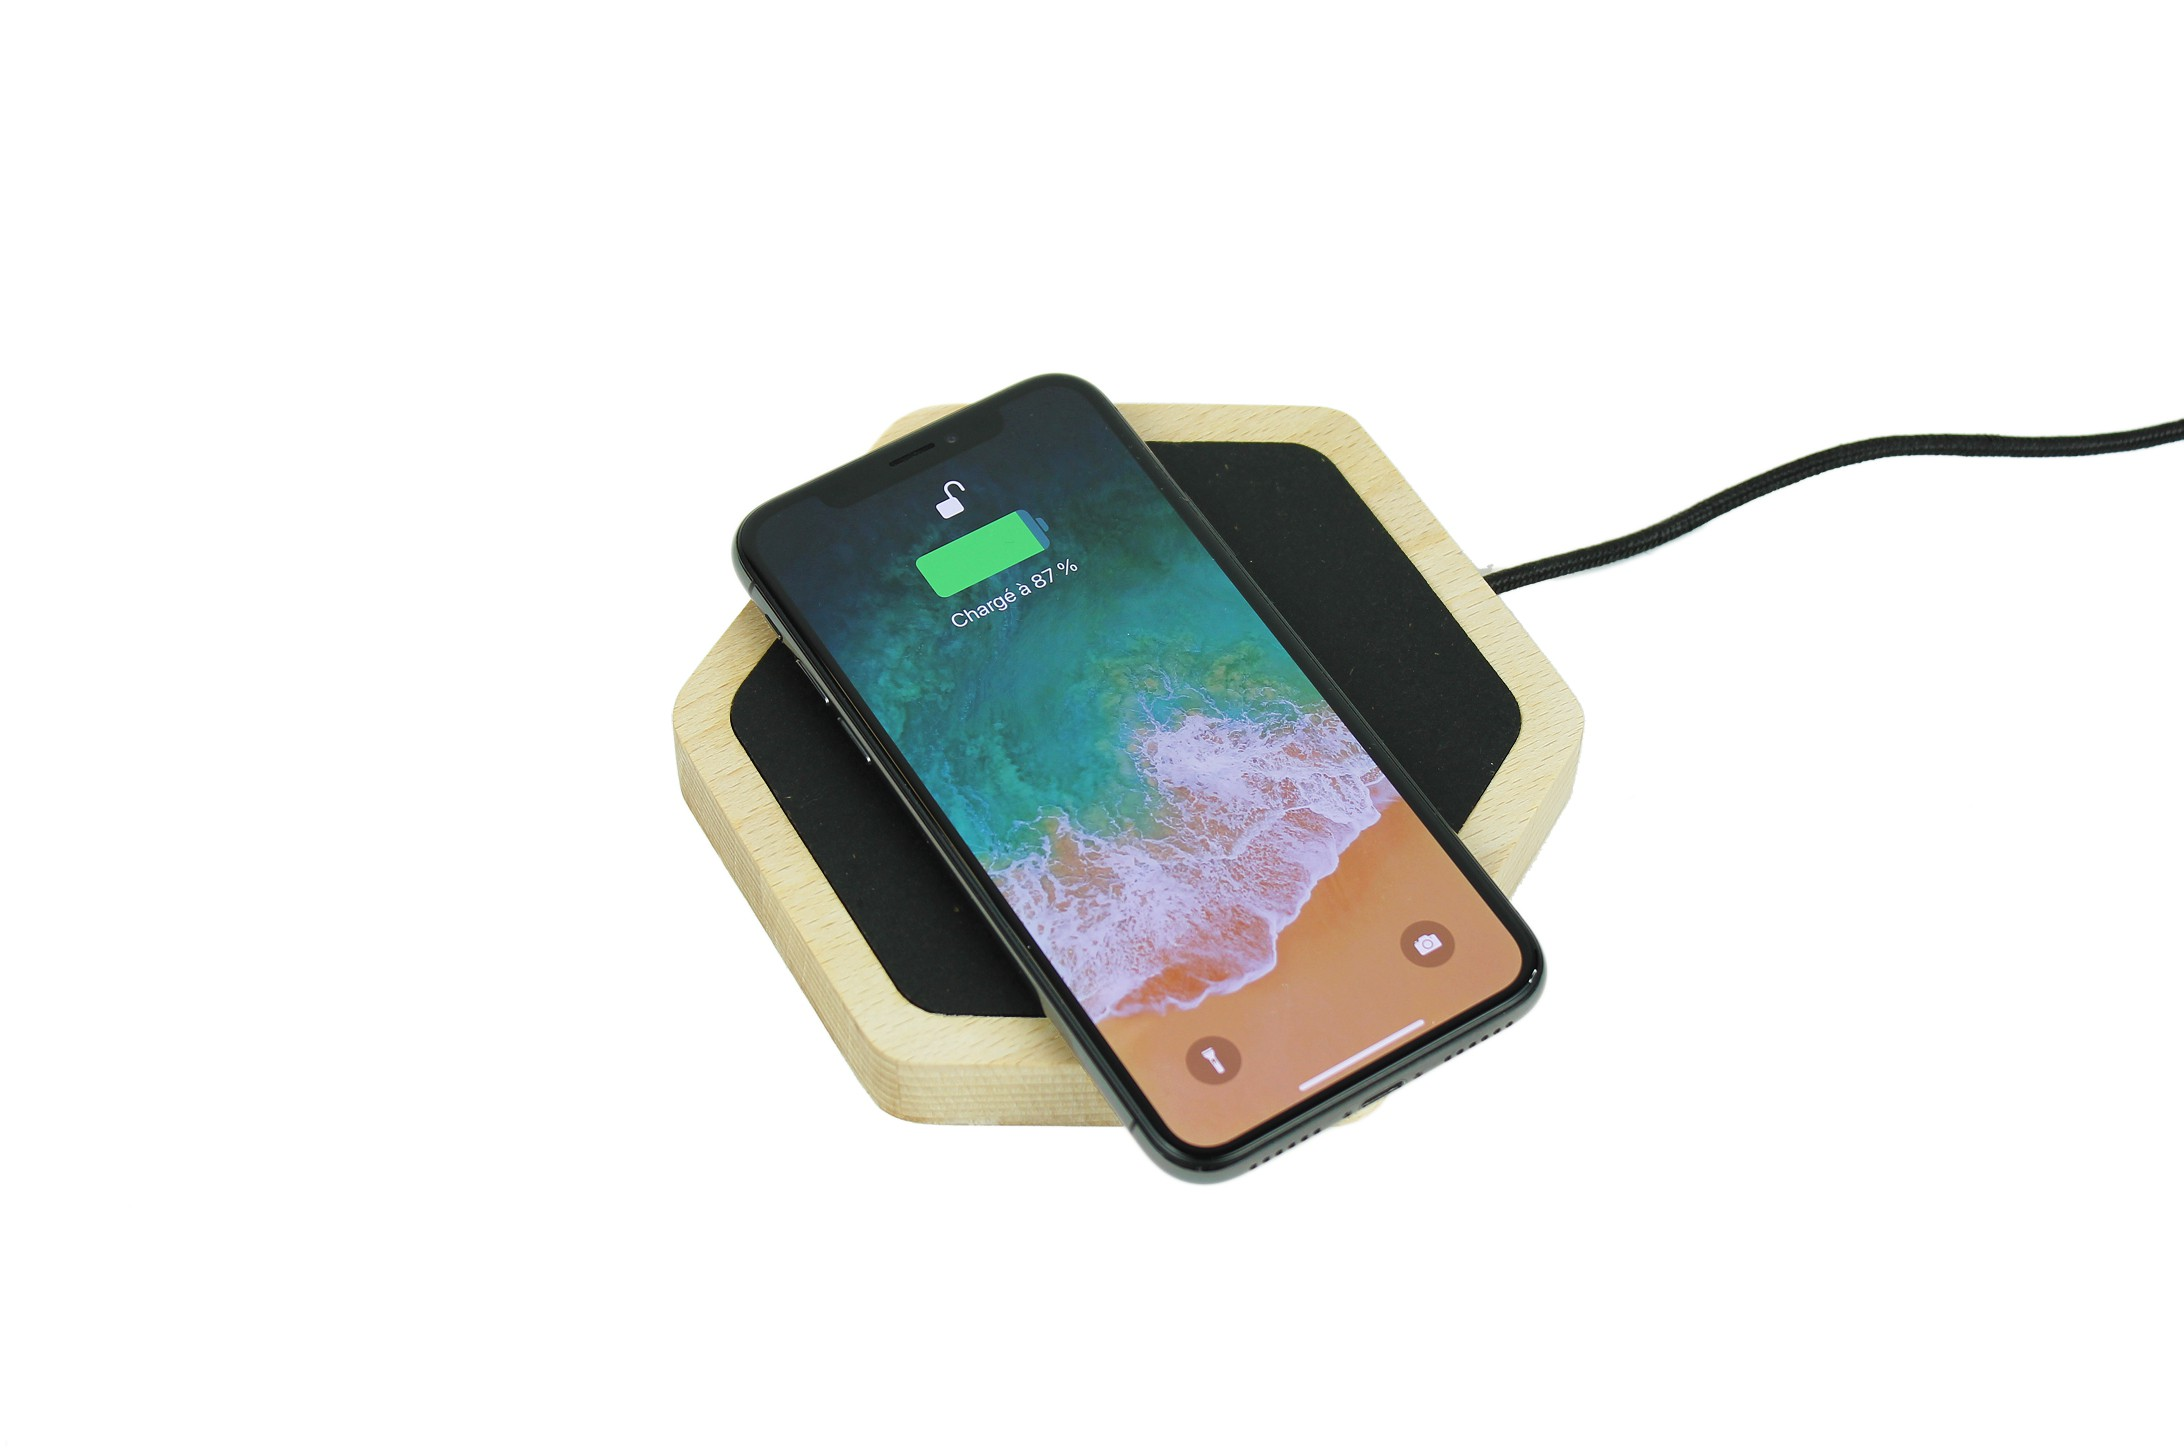 Wireless charging base for iPhone 8, iPhone X